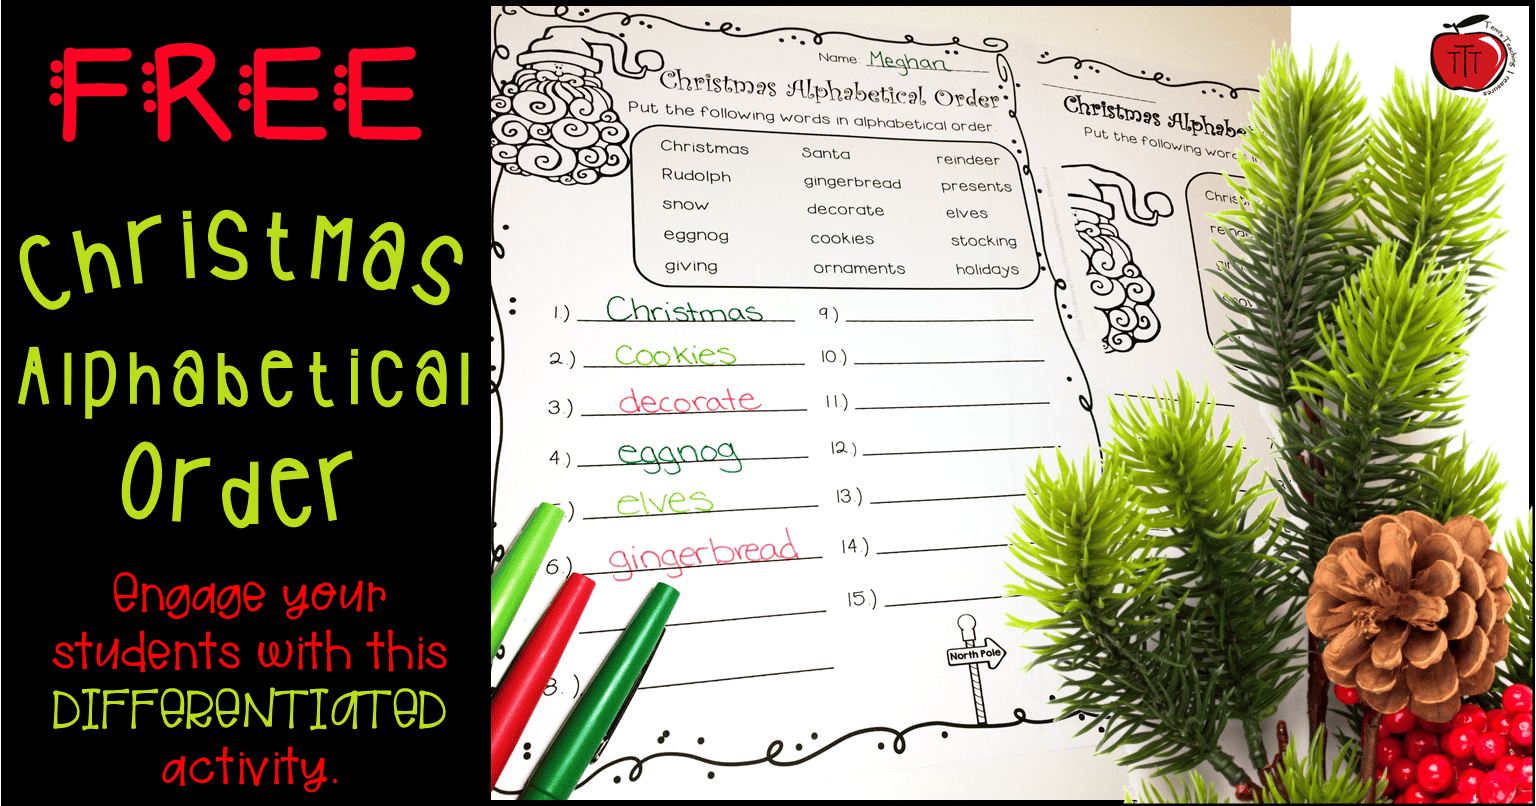 Free Christmas Alphabetical Order Worksheets